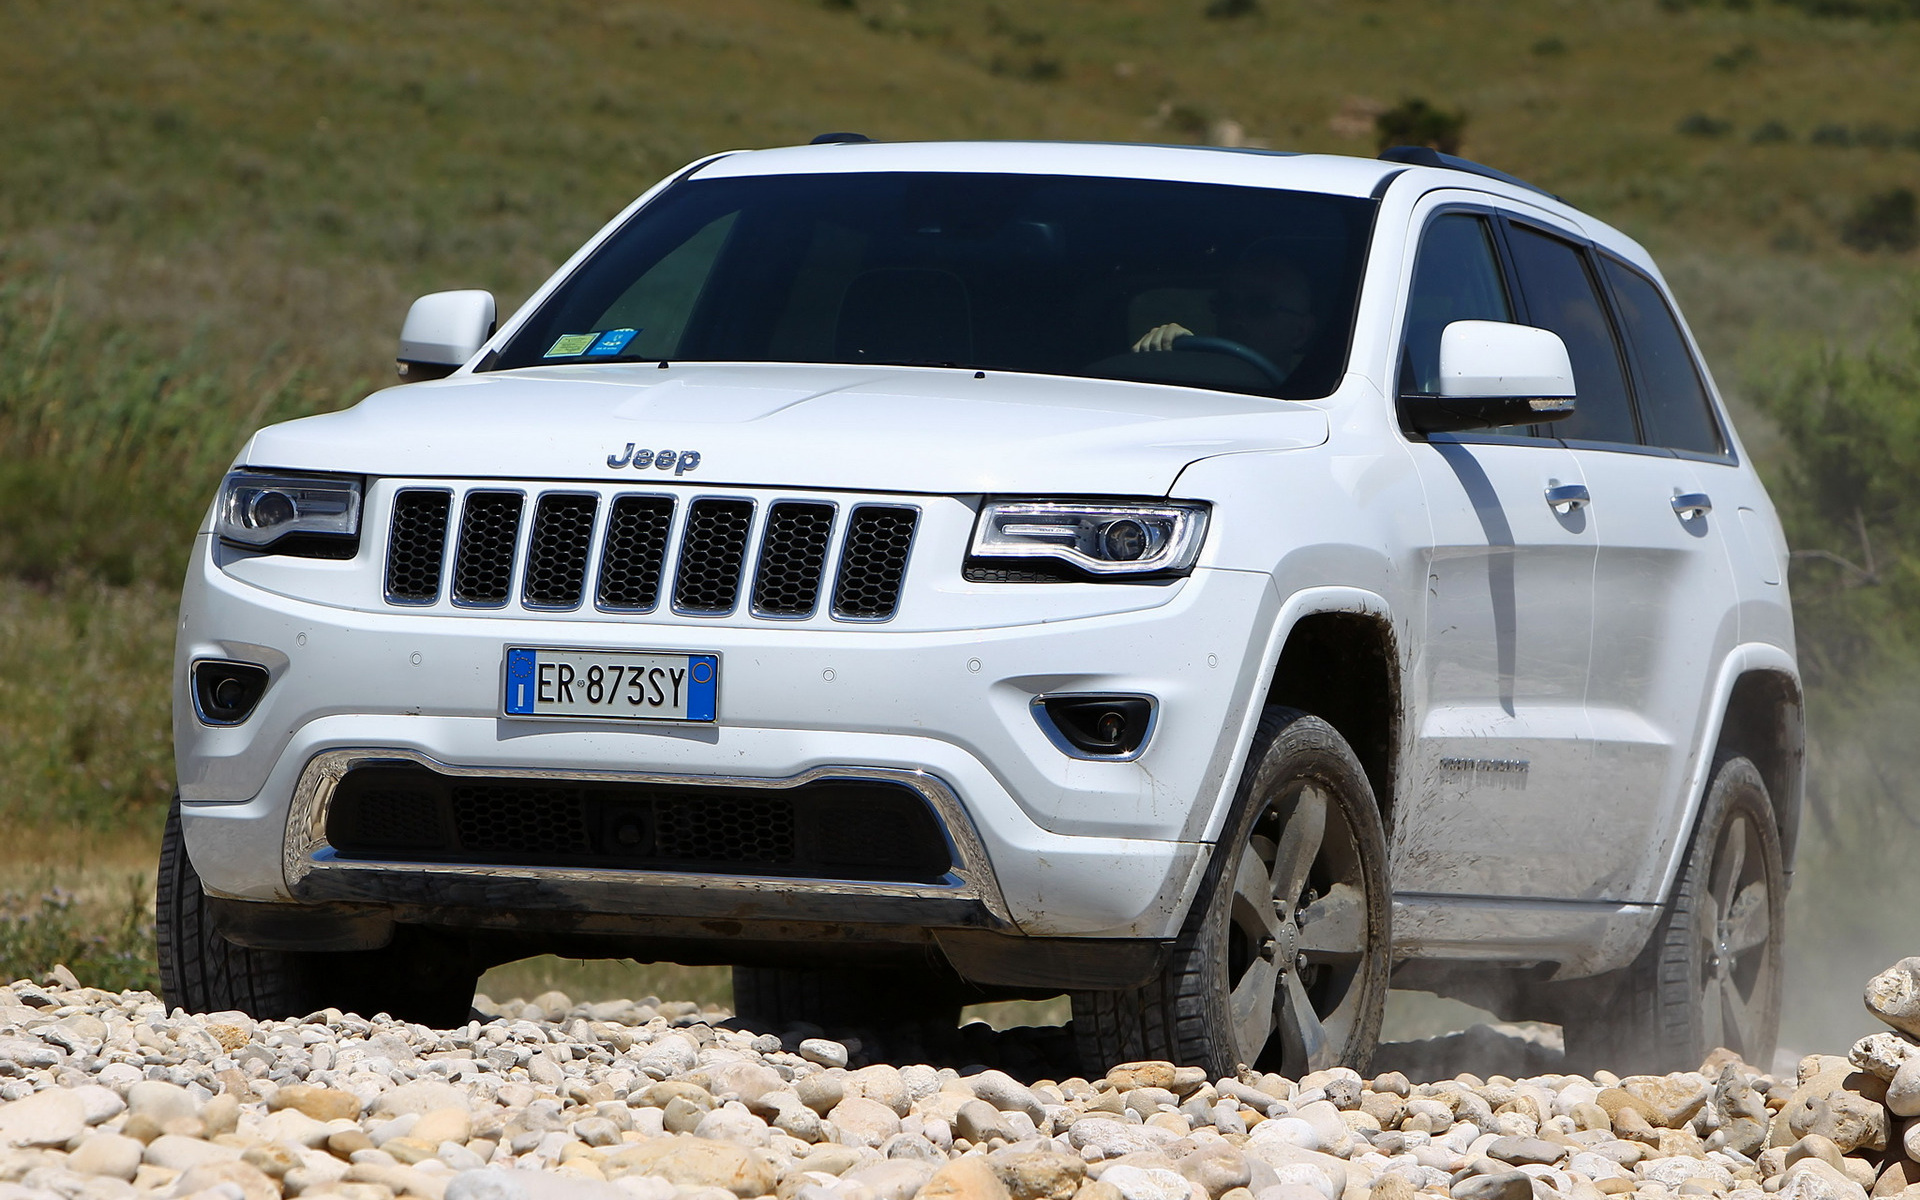 wallpaper car grand overland and cherokee jeep eu wallpapers wide images hd